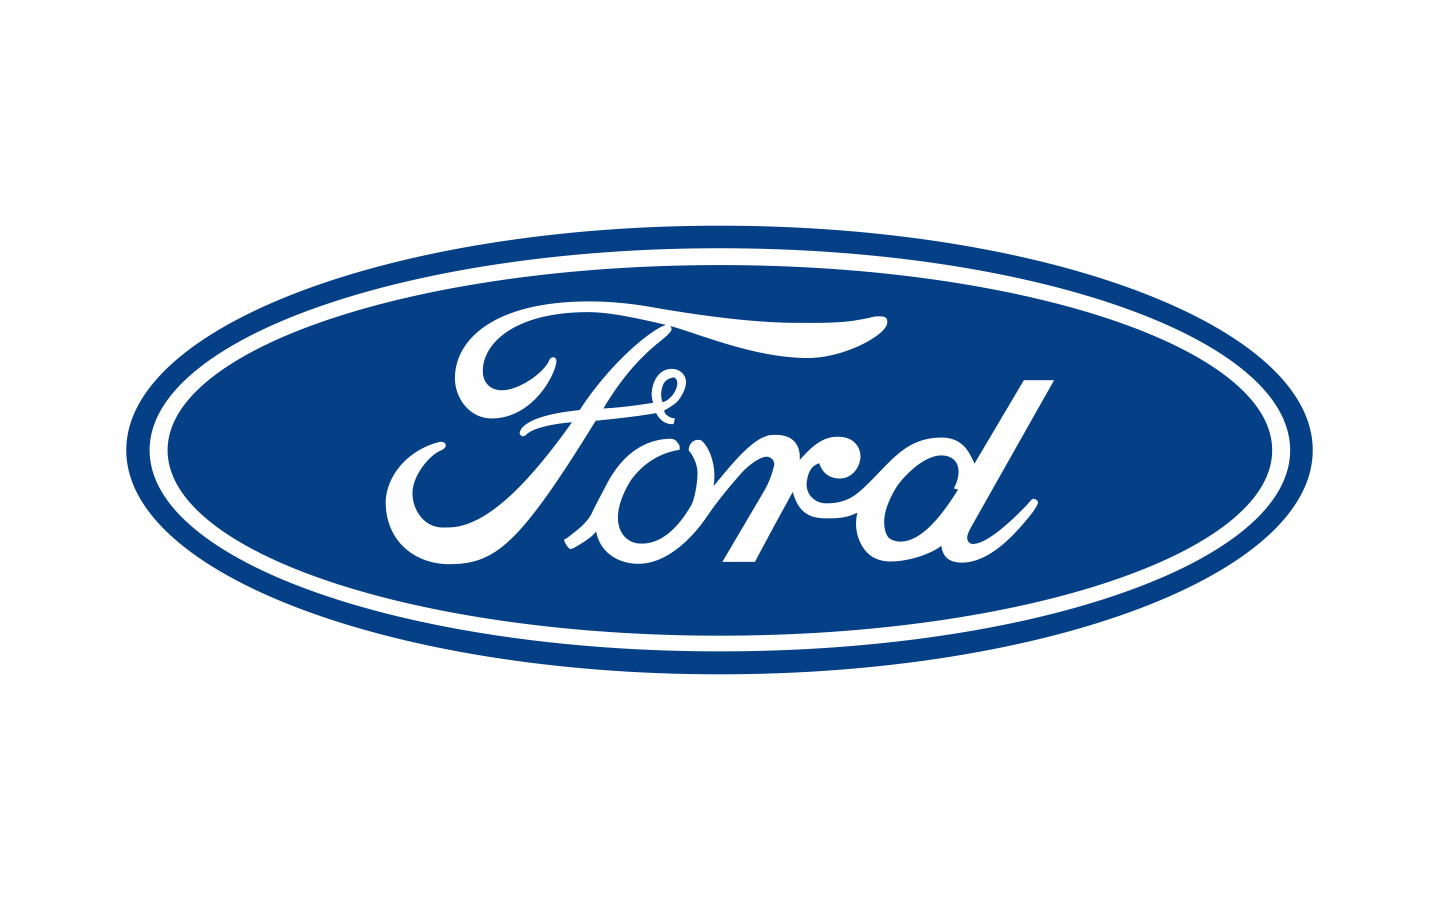 Ford png transparent fordg images pluspng ford logo png clipart ford png voltagebd Gallery